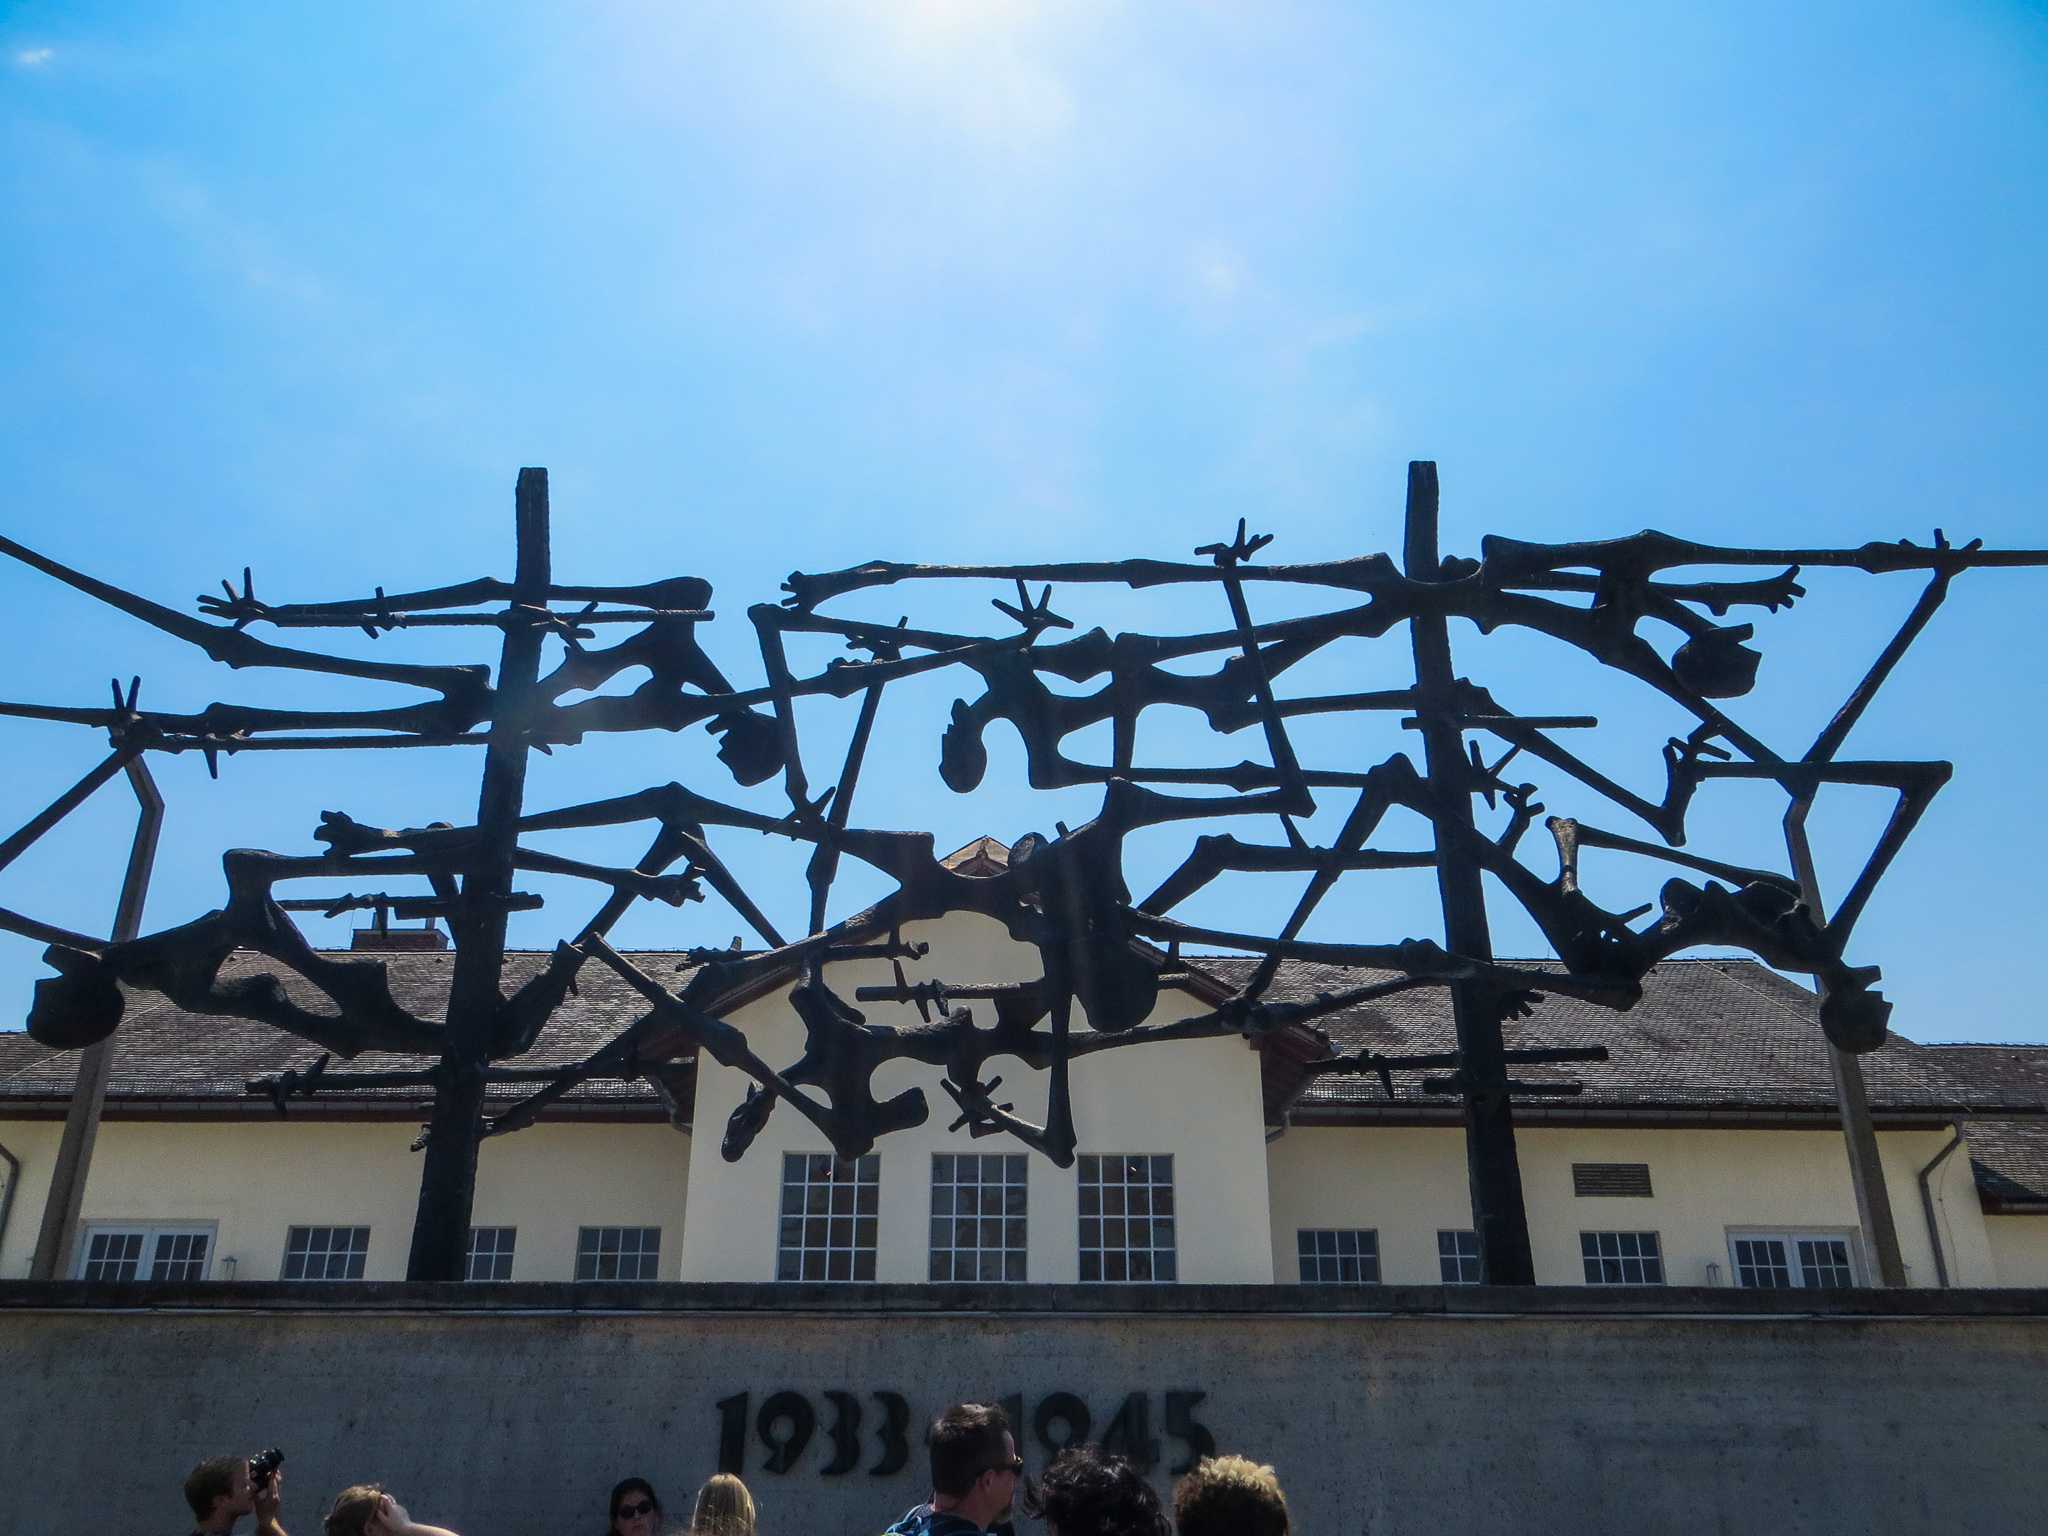 getting to dachau from munich isn't too challenging